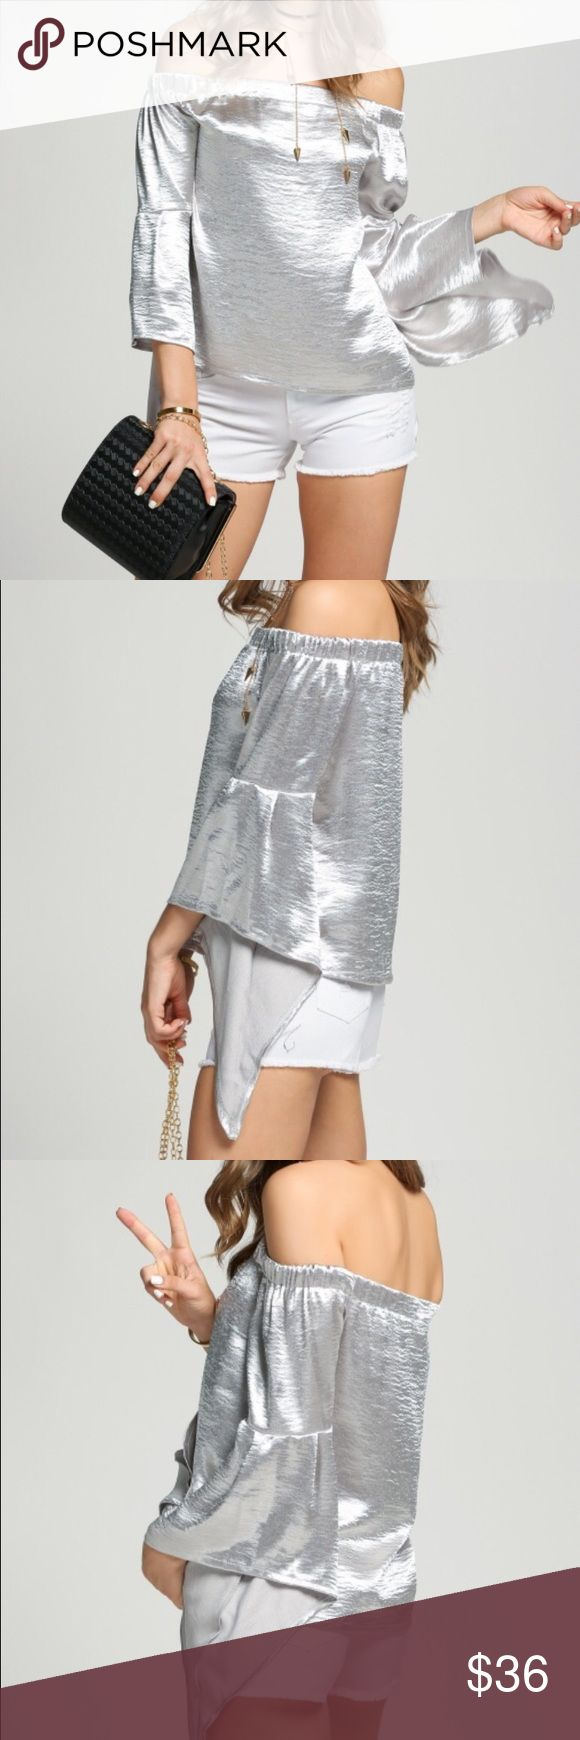 ‼️final price ‼️Off the shoulder metallic blouse Off the shoulder metallic blouse. 100% polyester. 3/4 bell sleeve. New without tags retail. Never worn. Ships within one week. ‼️no offers accepted clearance pricing ‼️ ShopNicety Tops